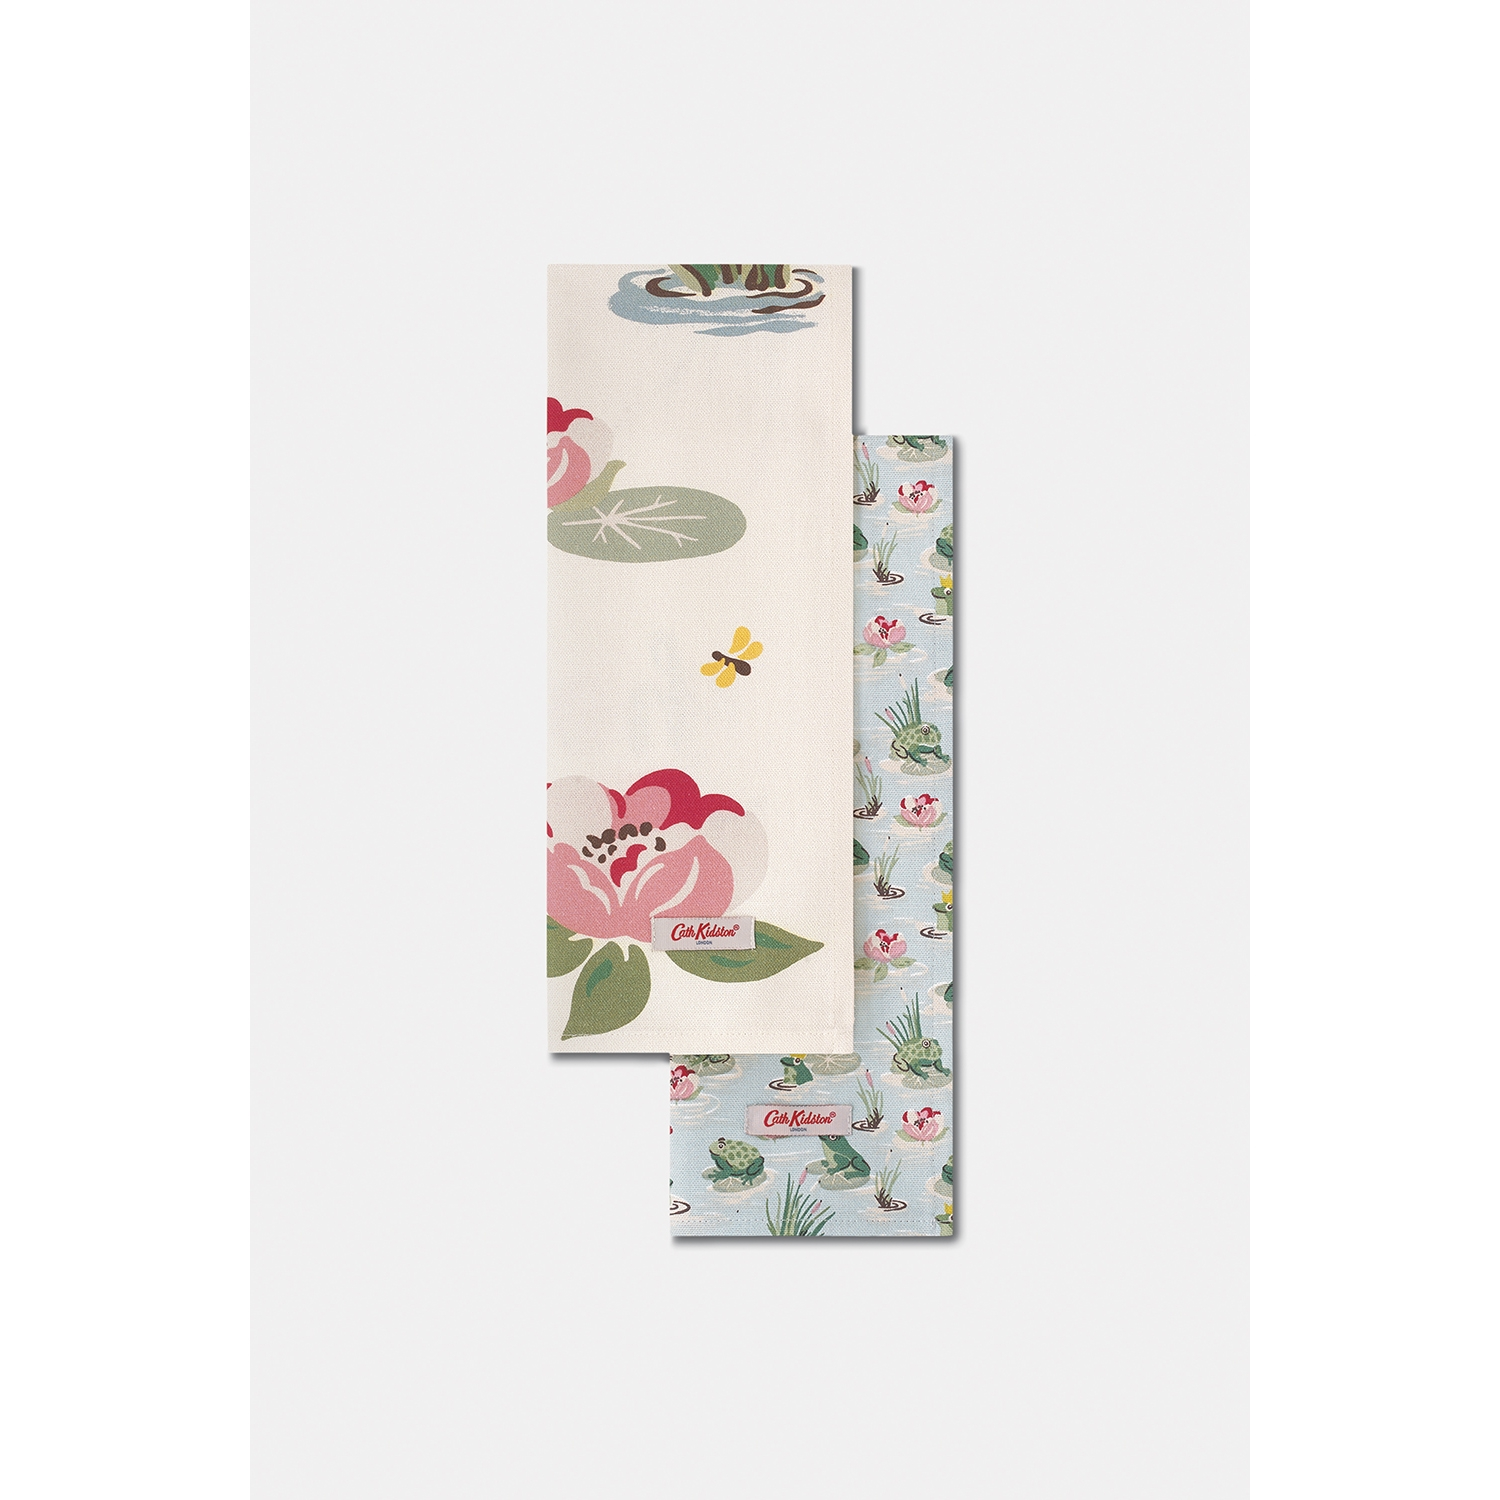 Image of Cath Kidston Frogs Tea Towels, Set Of Two, Green/cream